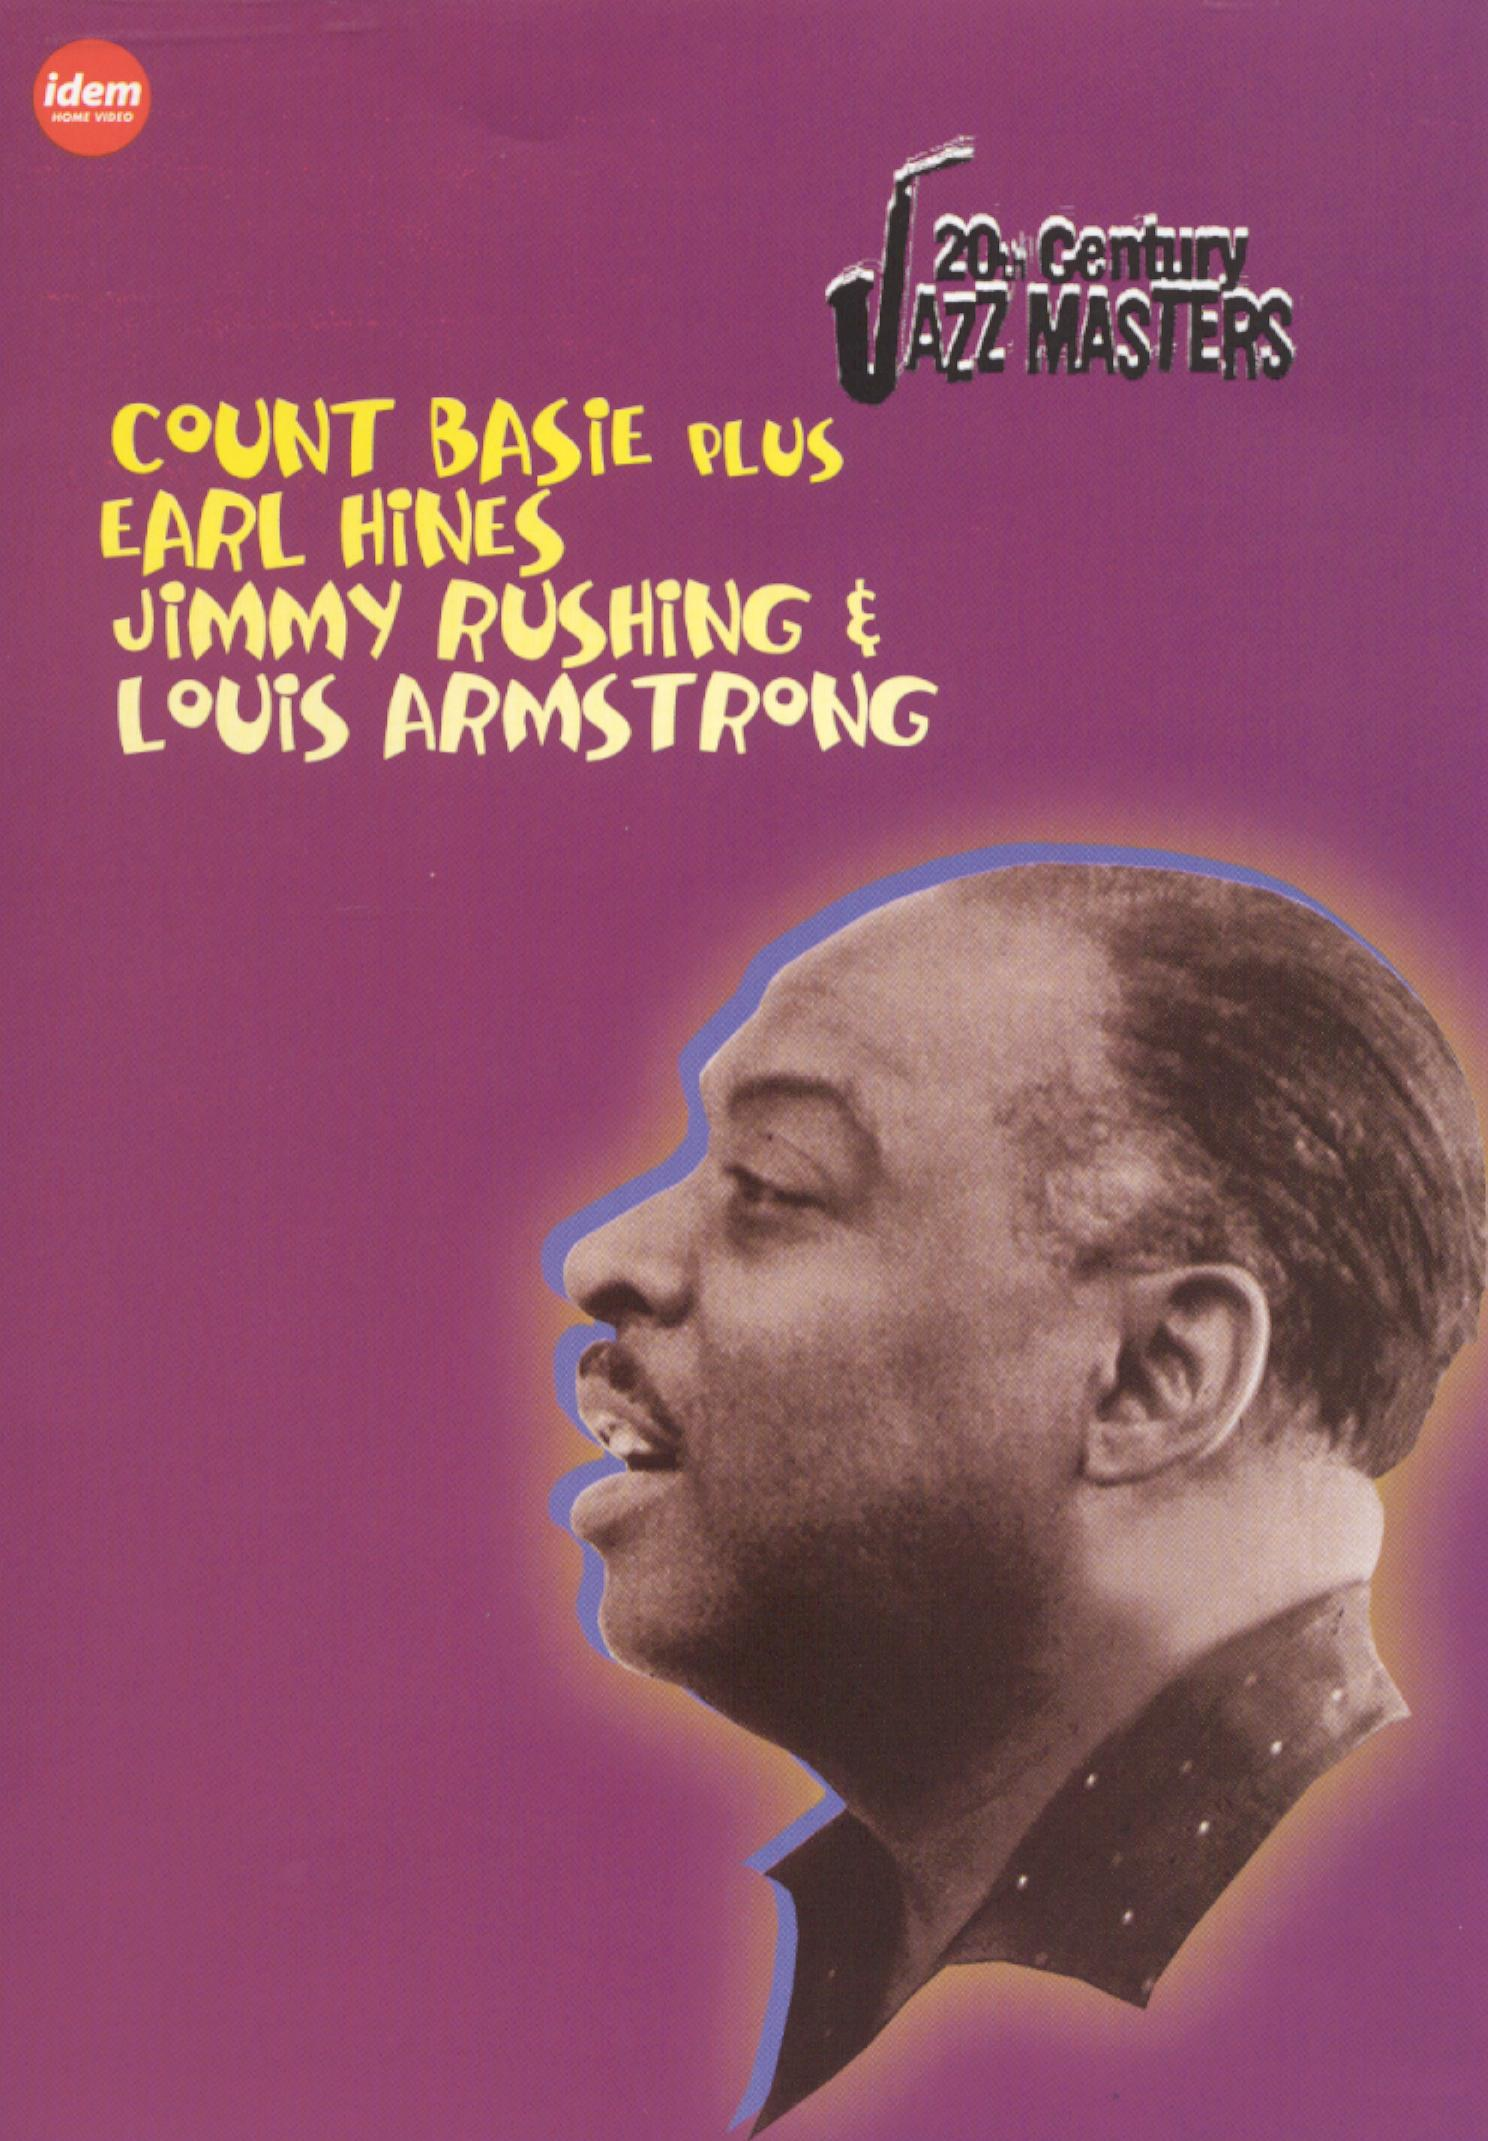 20th Century Jazz Masters: Count Basie/Earl Hines/Jimmy Rushing/Louis Armstrong